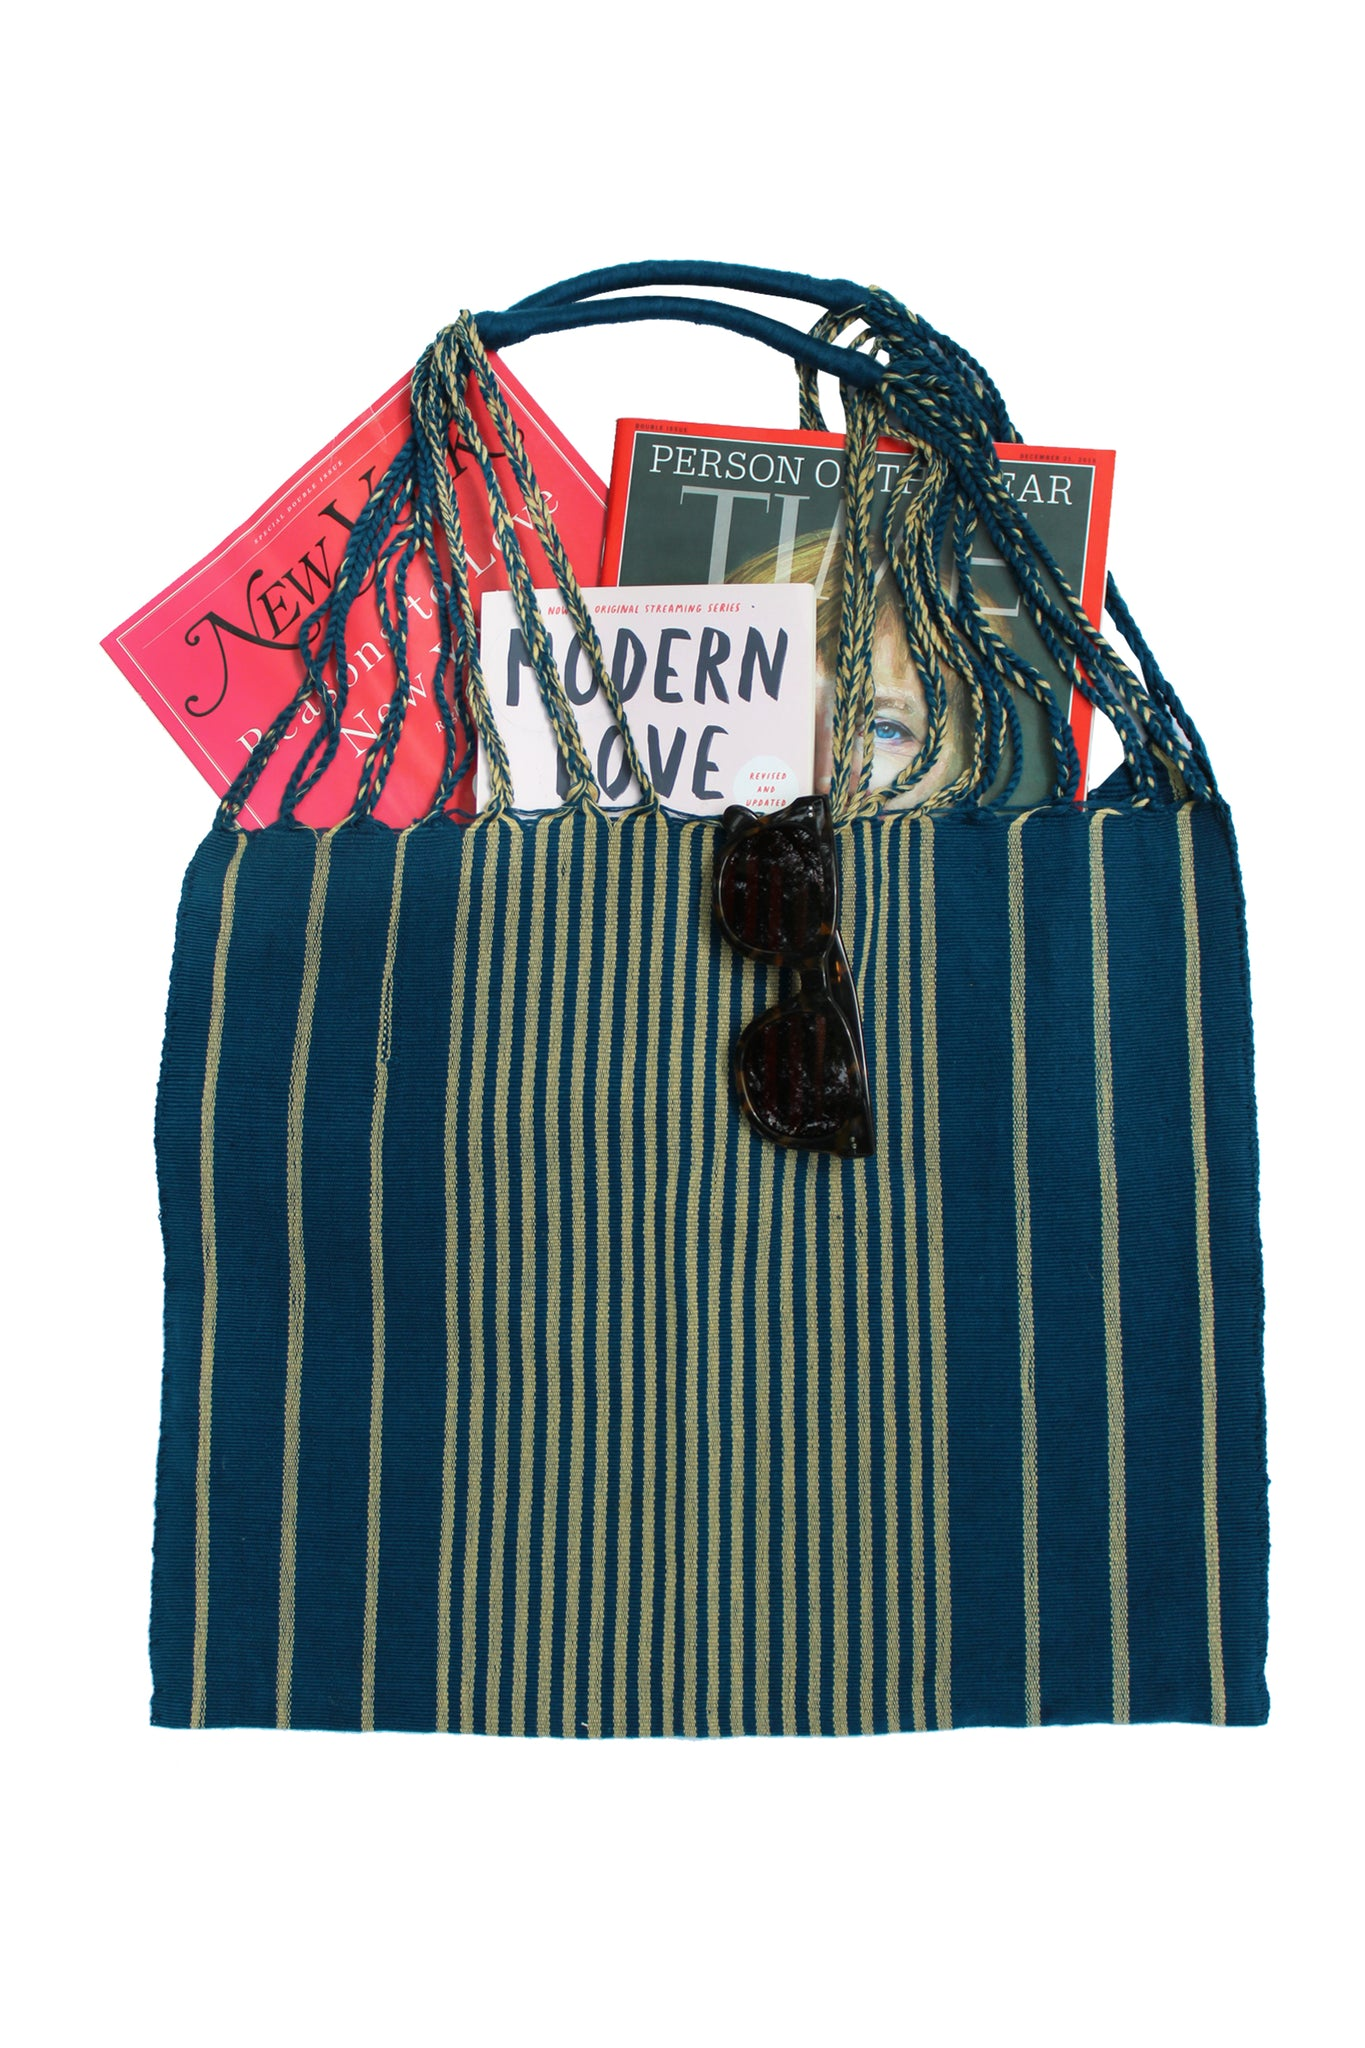 Market Bags - Our Bestsellers